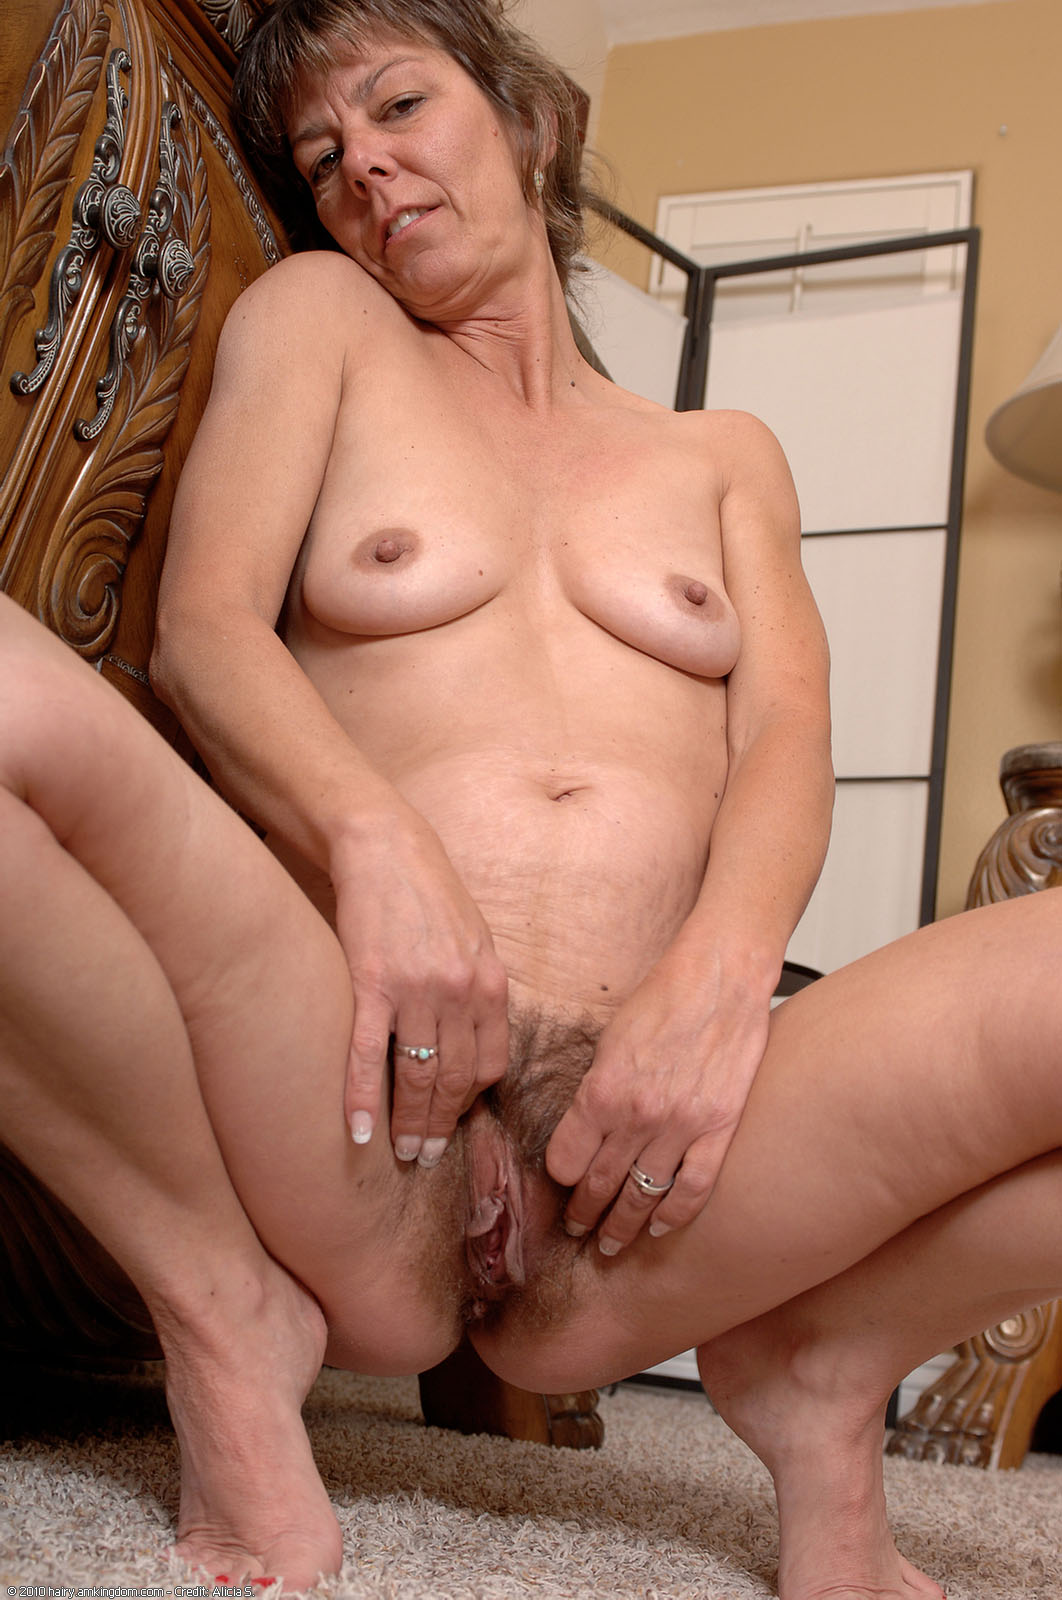 Mature hairy old PUSSY: A